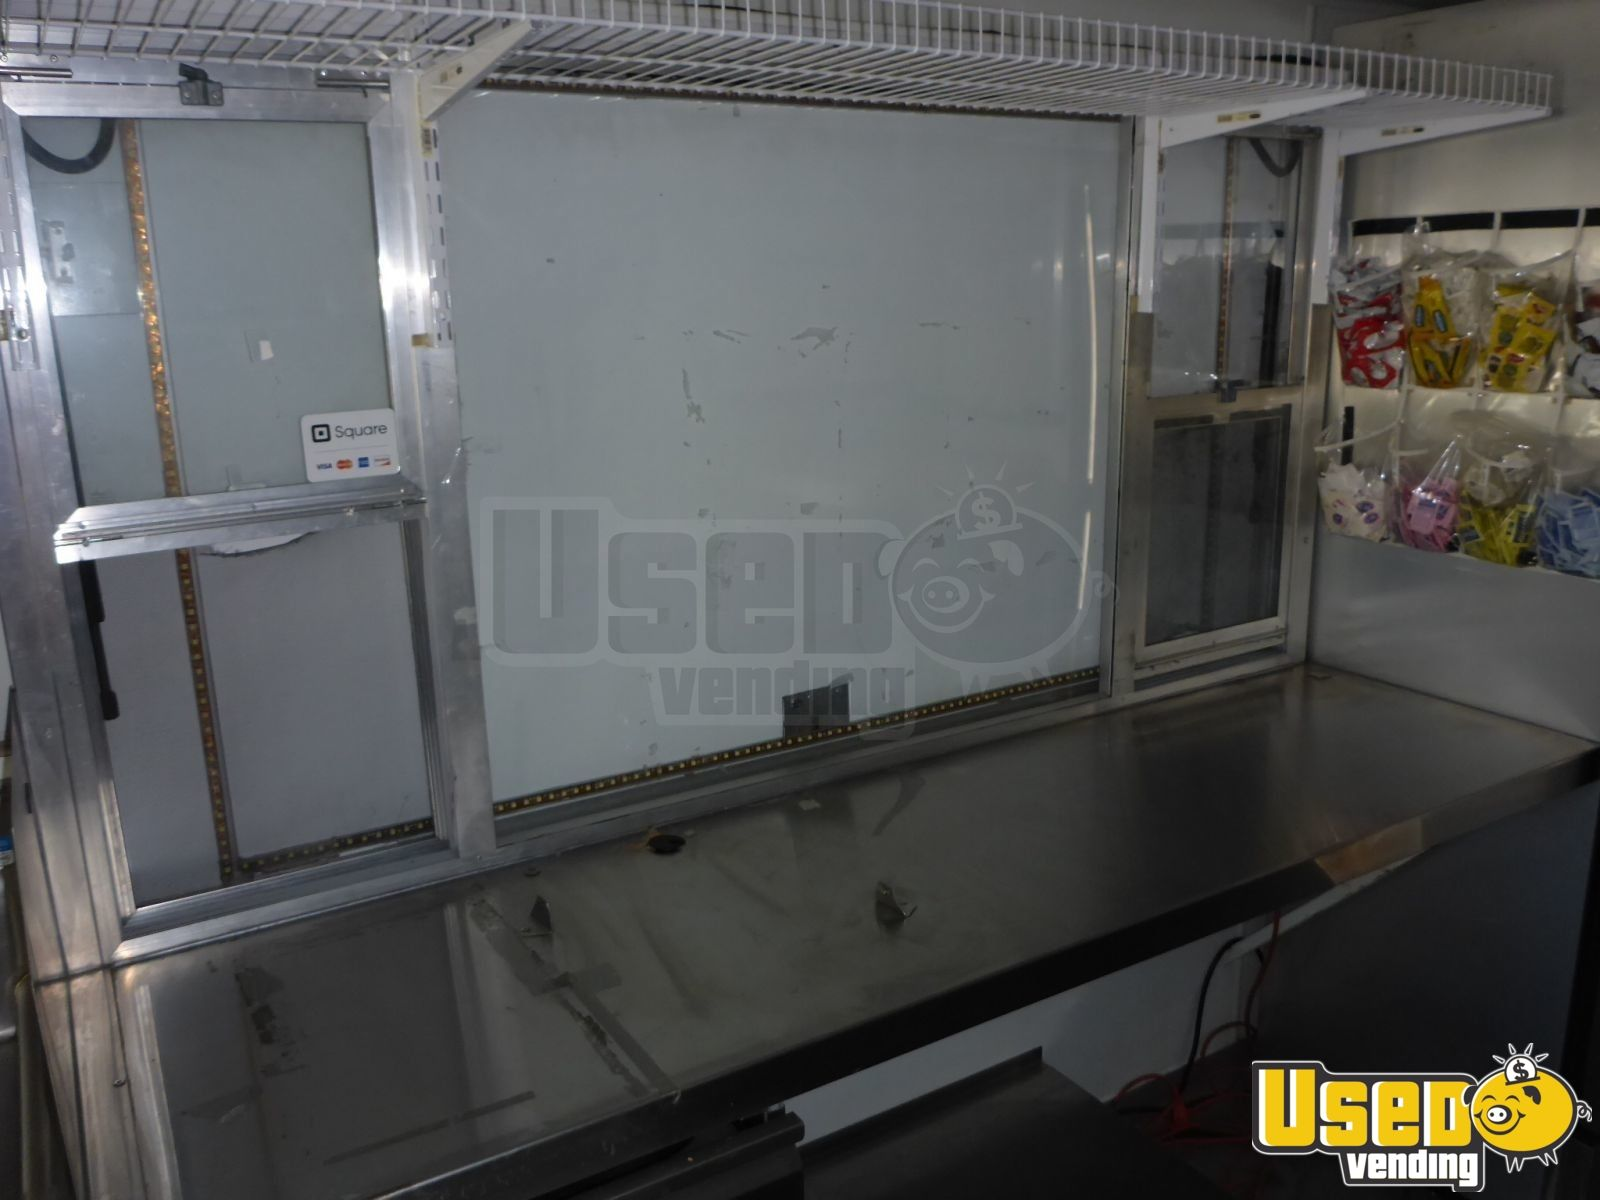 1995 Gmc Food Truck 20 California for Sale - 20